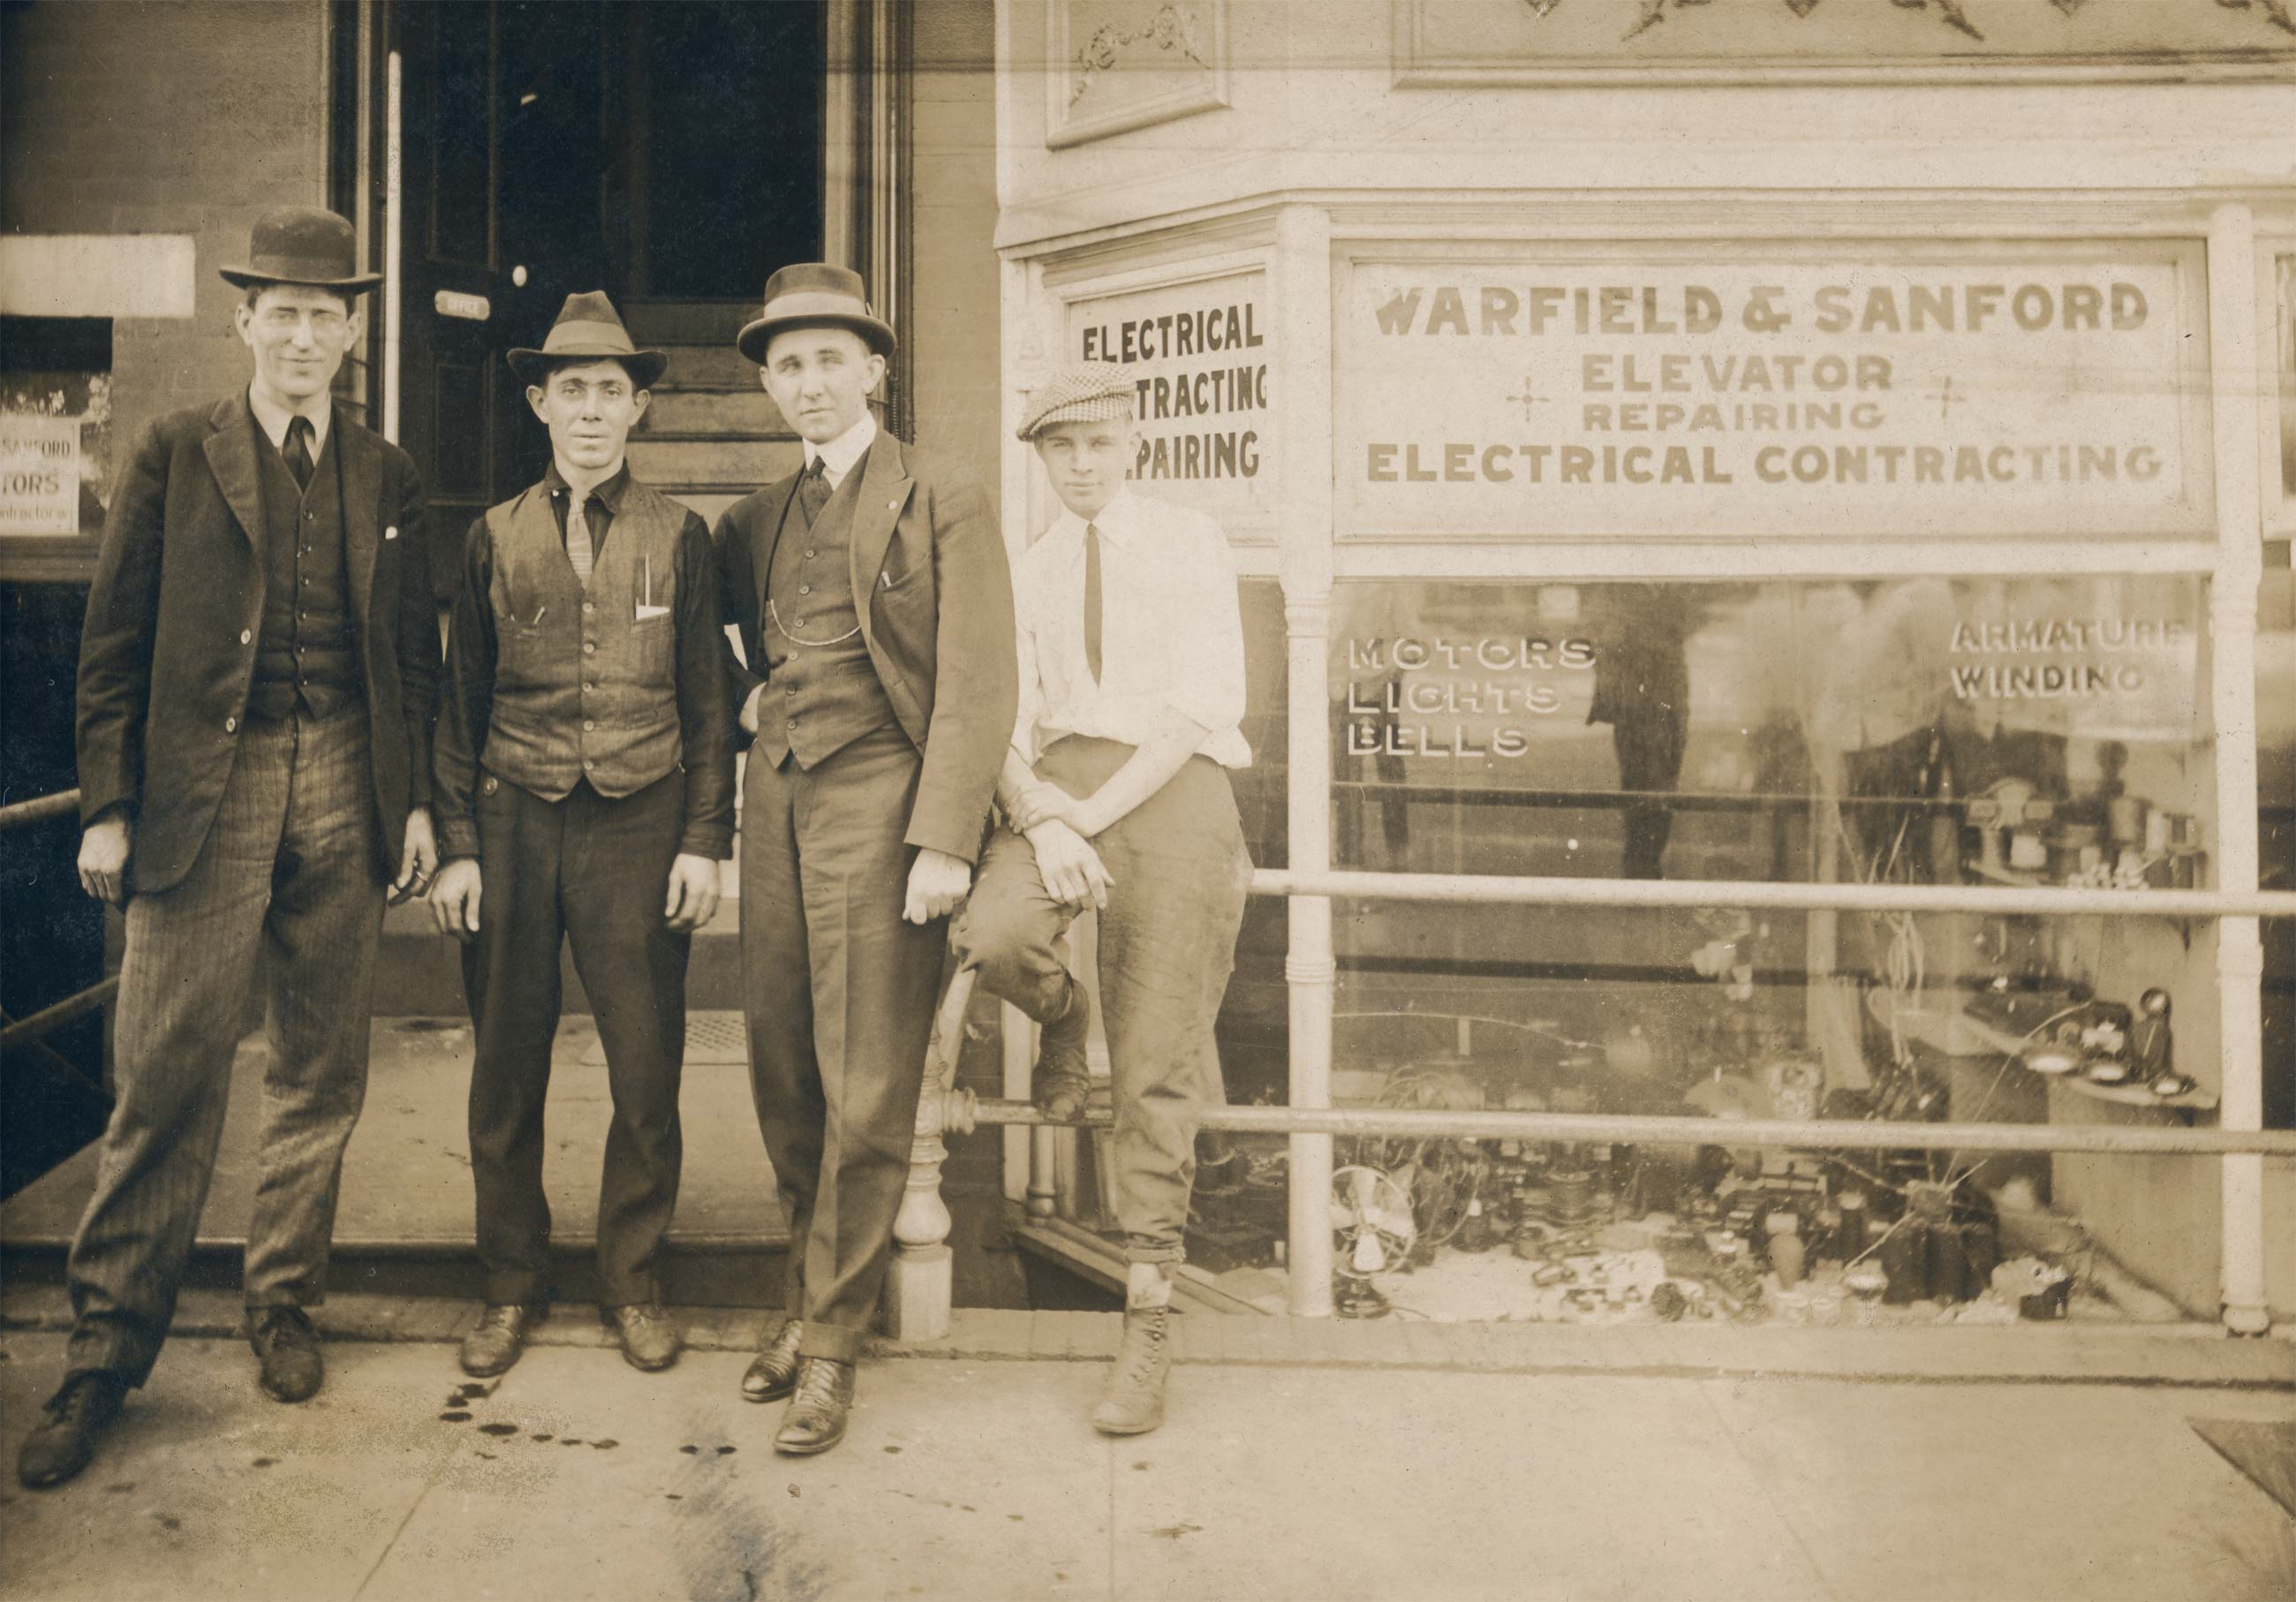 Warfield and Sanford vintage picture